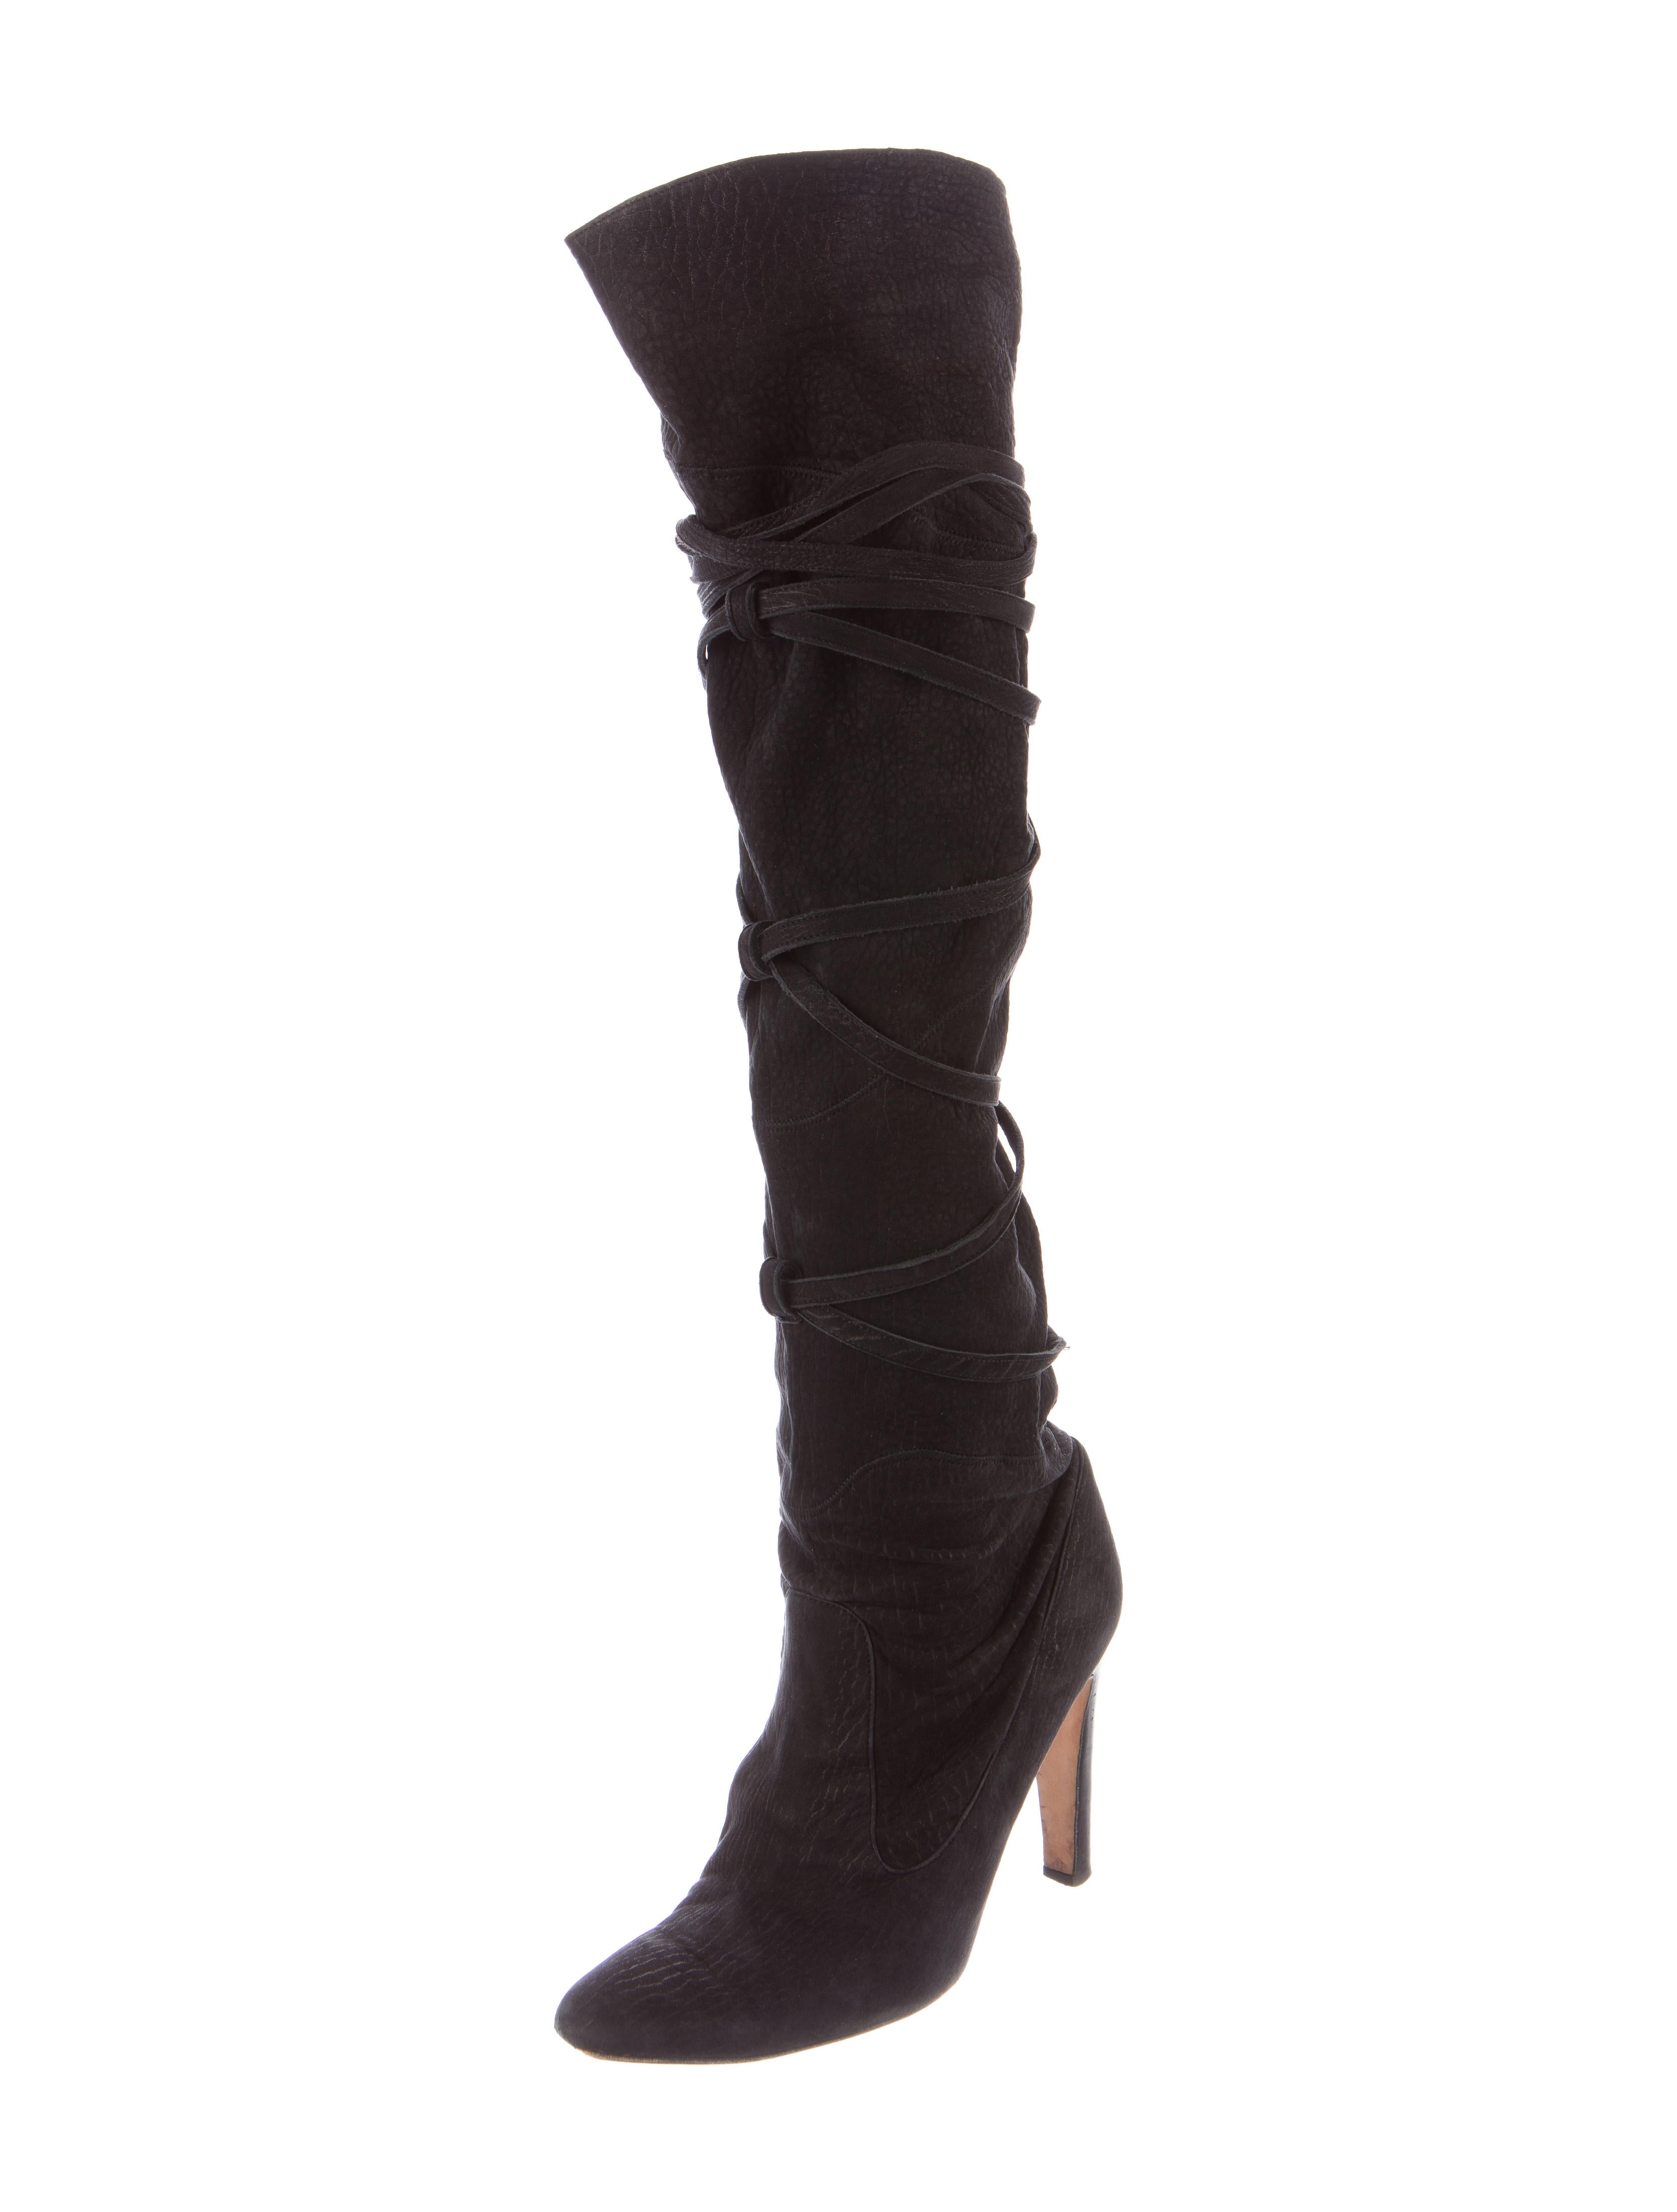 manolo blahnik suede leather the knee boots shoes